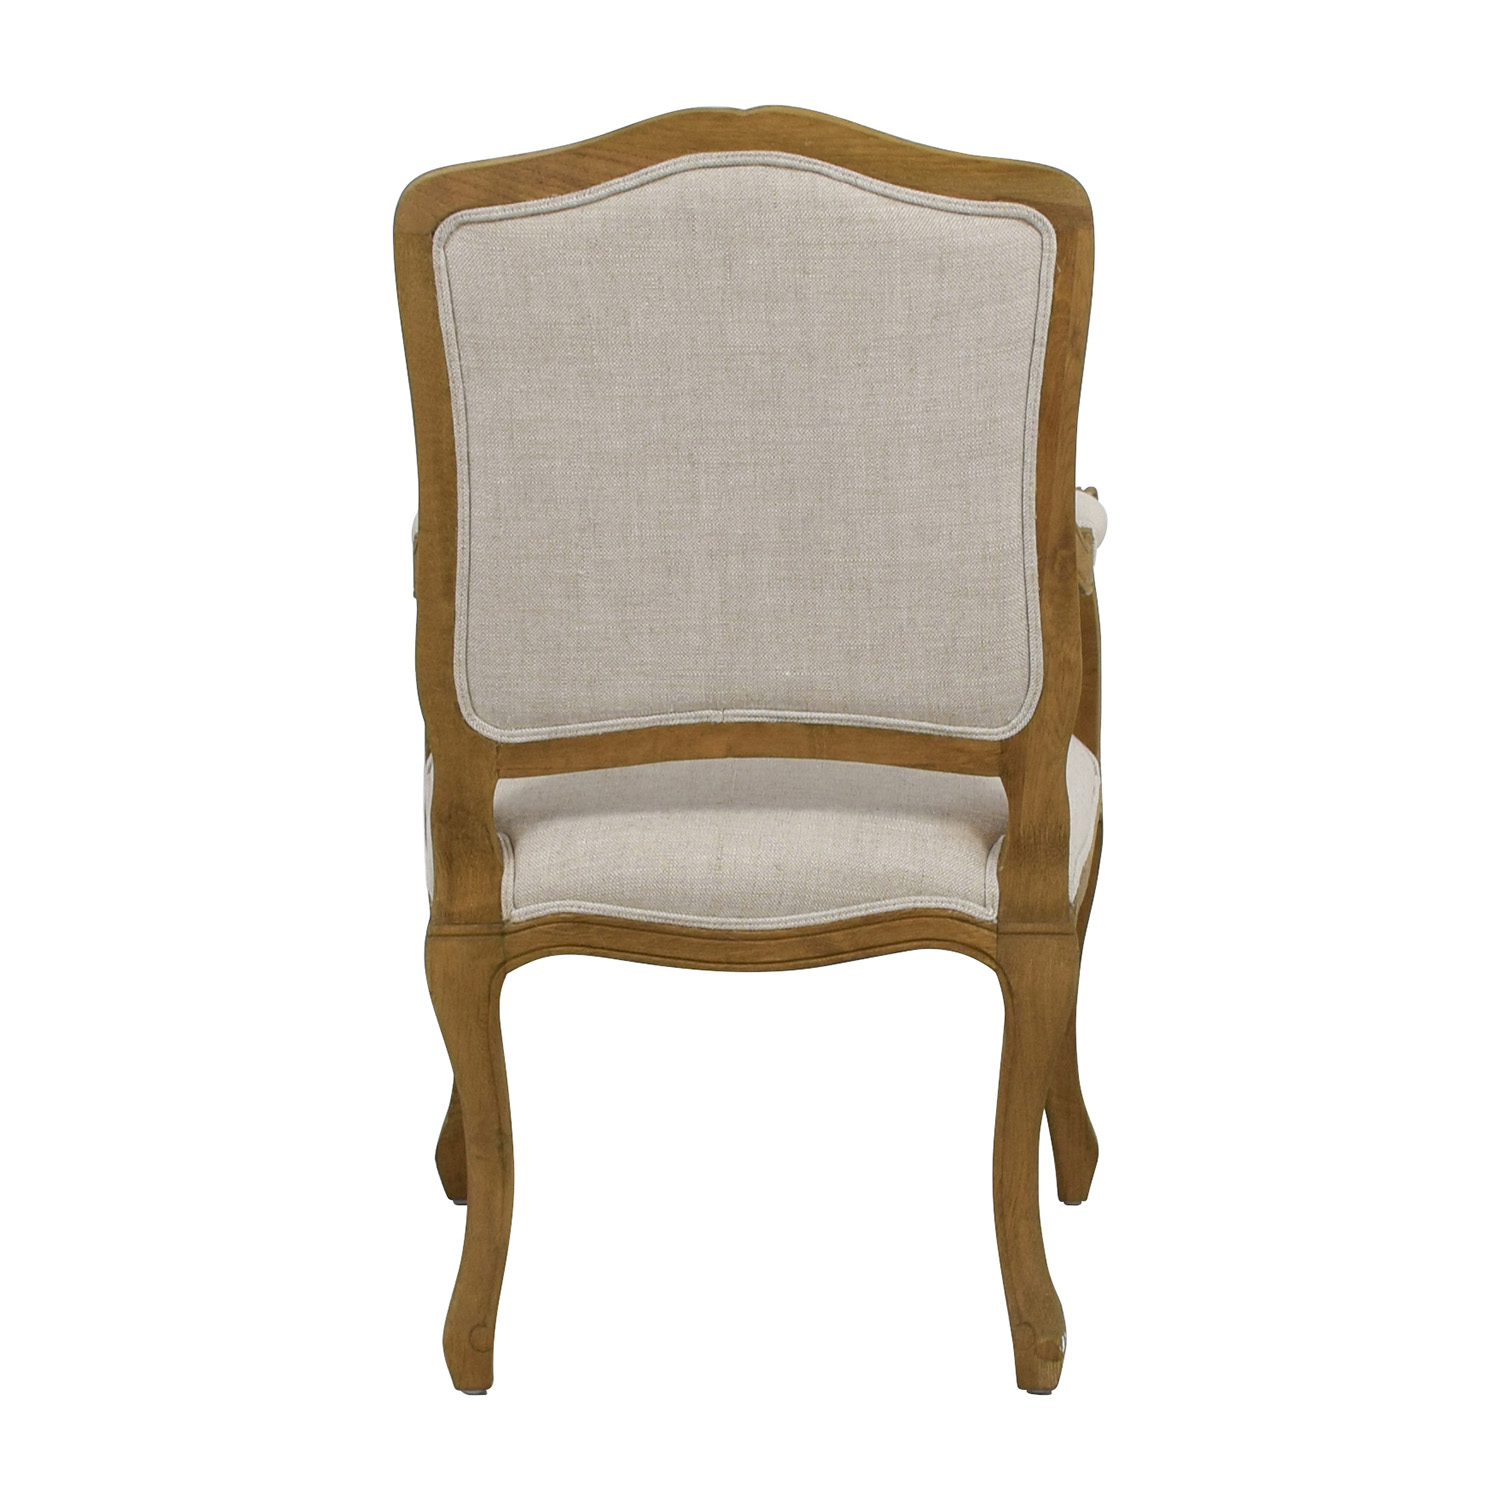 ... Restoration Hardware Restoration Hardware Vintage French Camelback  Fabric Armchair Accent Chairs ...